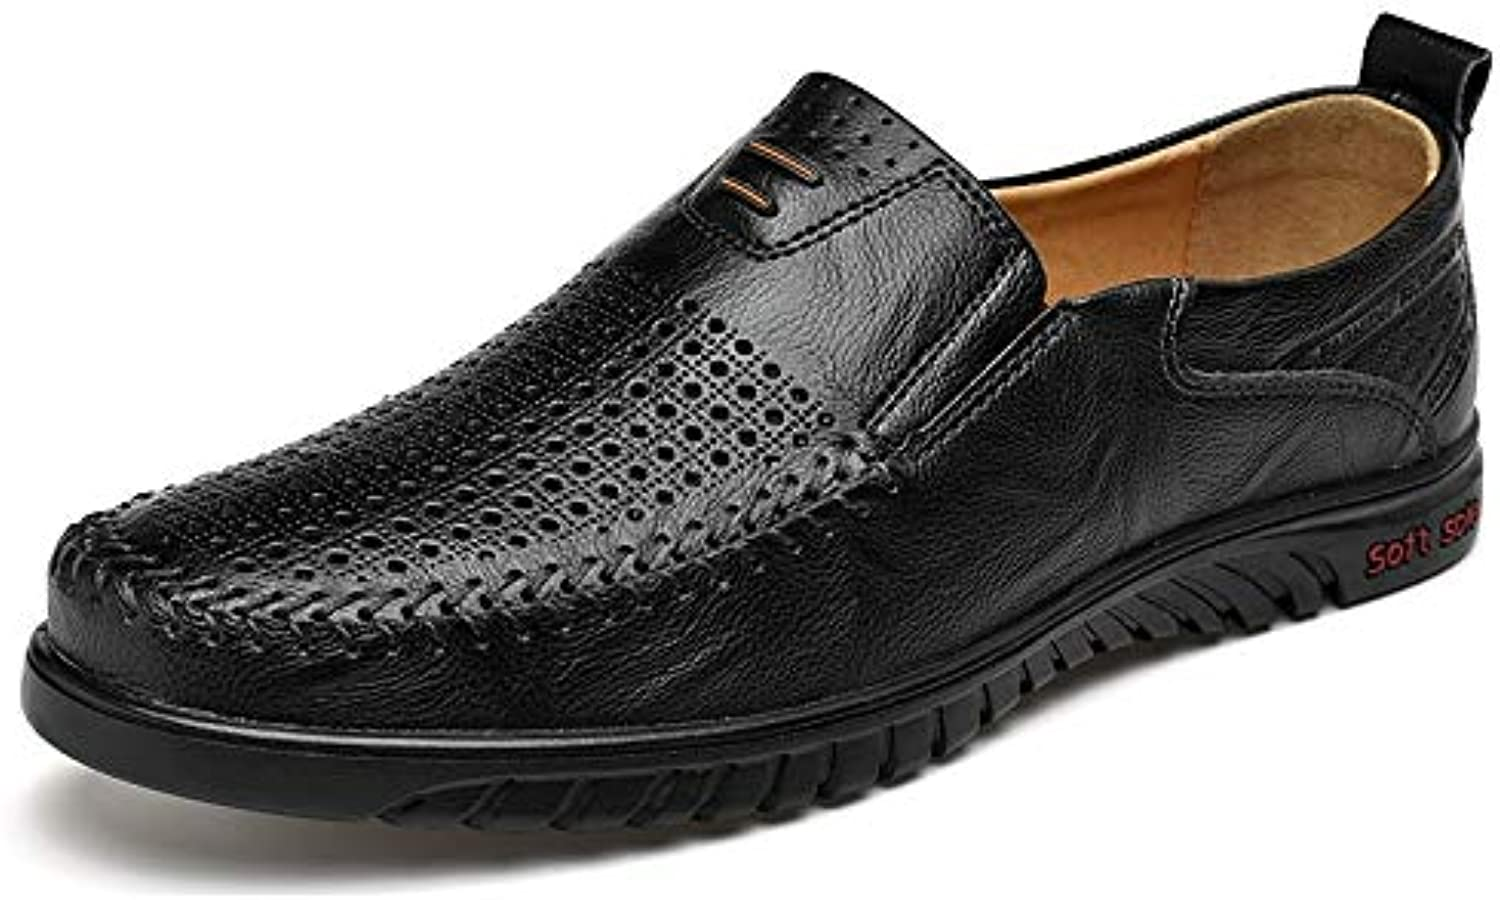 Easy Go Shopping Oxfords for Men Driving Loafer Slip On Style OX Leather Round Toe Breathable Hollow Vamp Cricket shoes